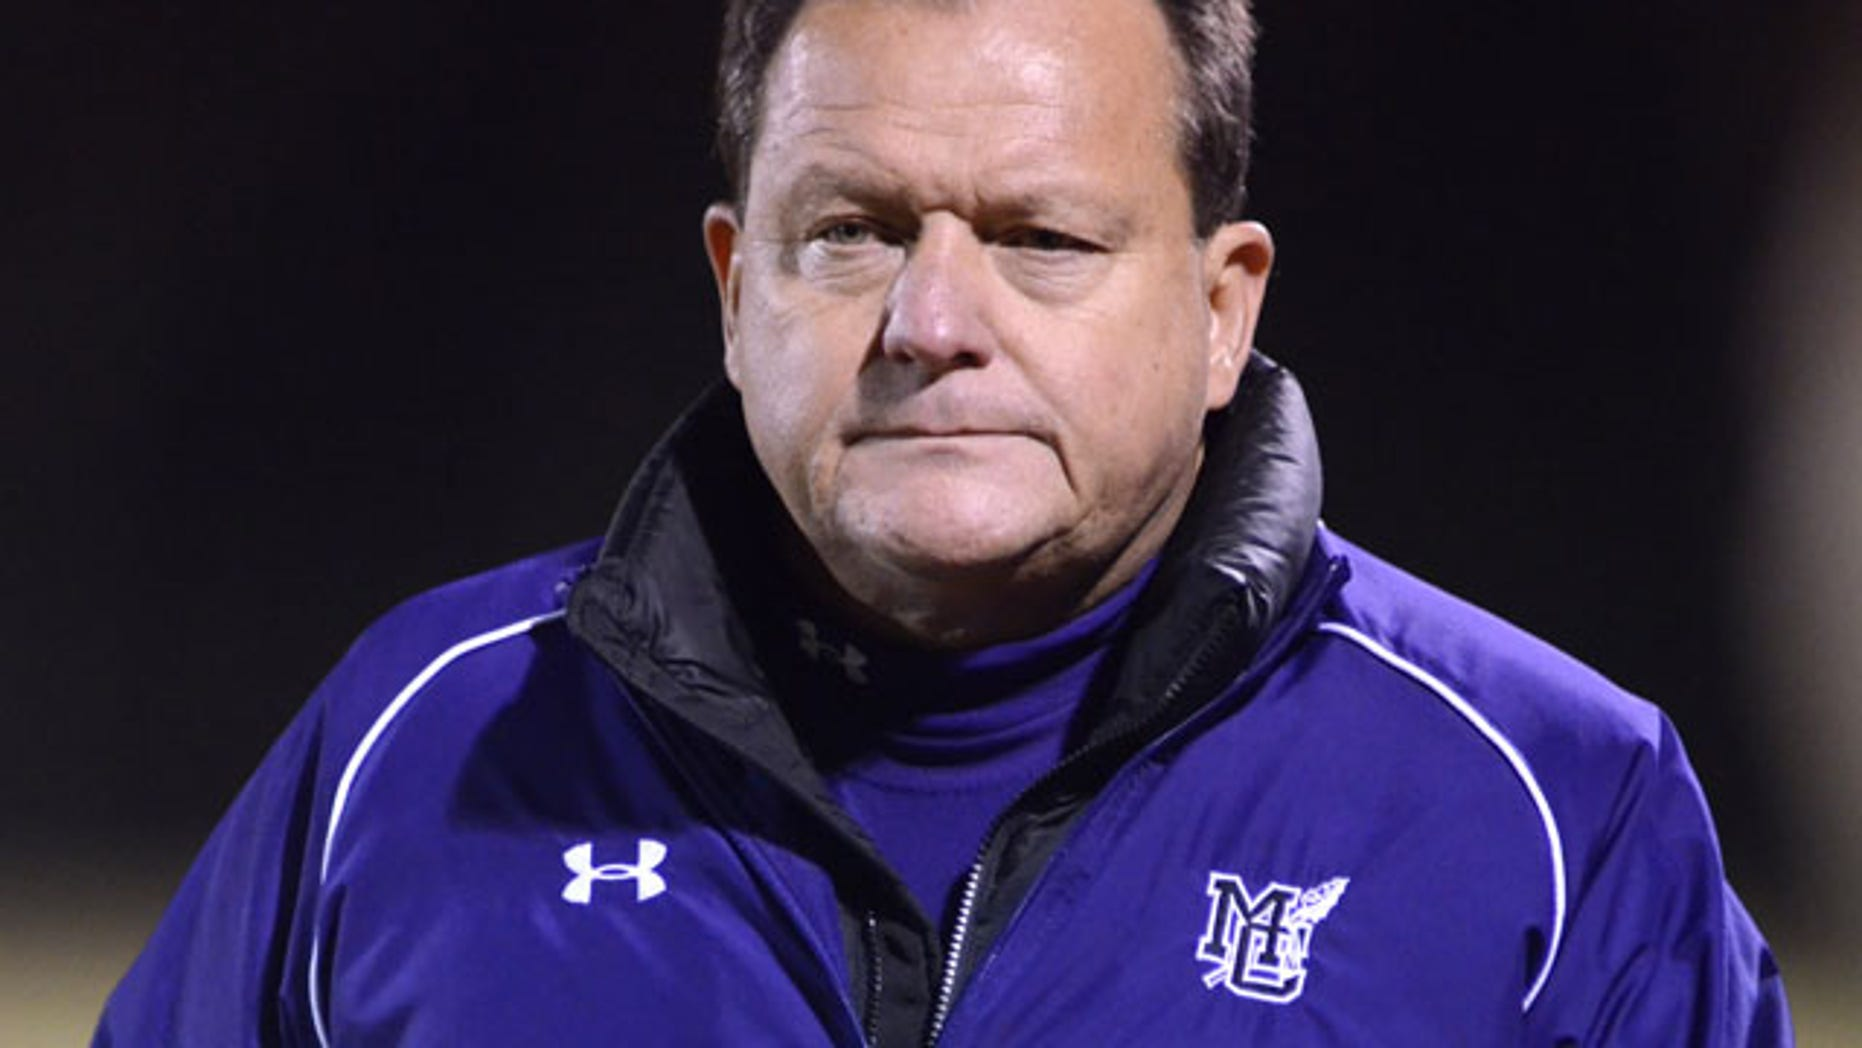 November 15, 2013: Marion County High School head coach Mac McCurry paces the sideline during a playoff football game in Chattanooga, Tenn. McCurry has resigned amid allegations that he and at least two of his assistants painted their team's field house with vulgarities and made it seem like the work of a rival high school. (AP Photo/Chattanooga Times Free Press, Robin Rudd)